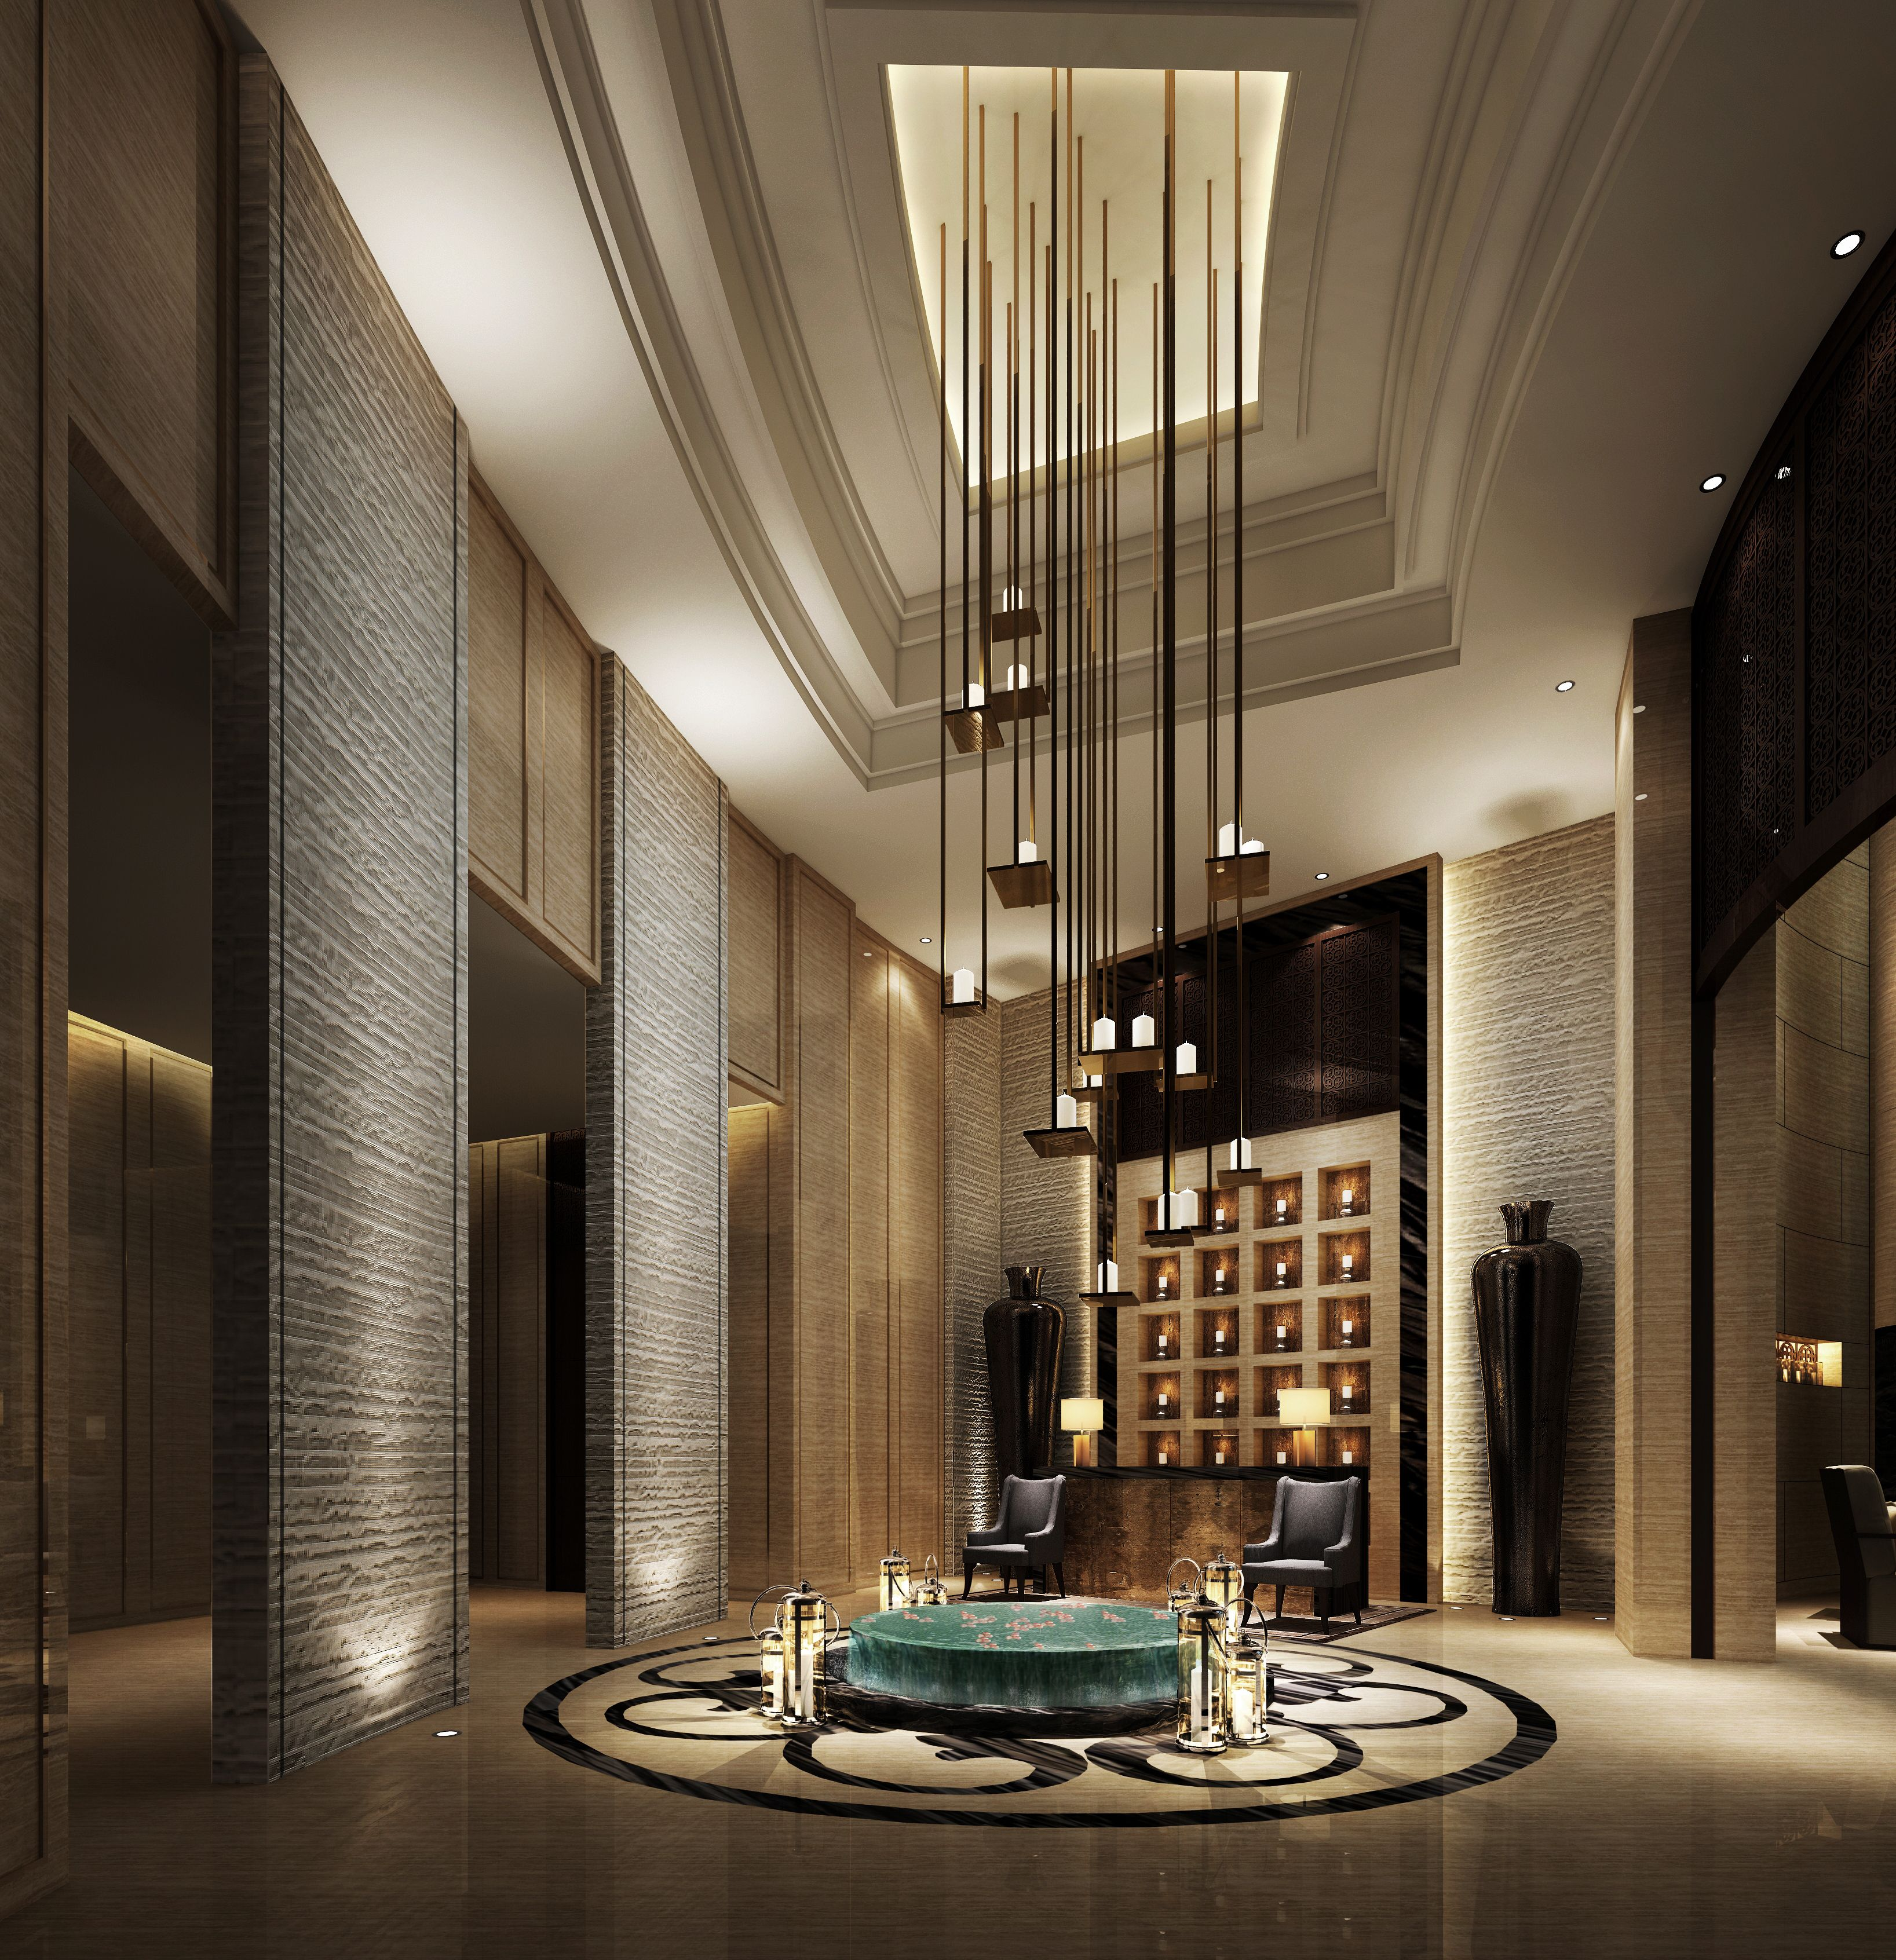 Hotel Decoration Design Pin By Faqih Satriani On Ideas For Hotel In 2018